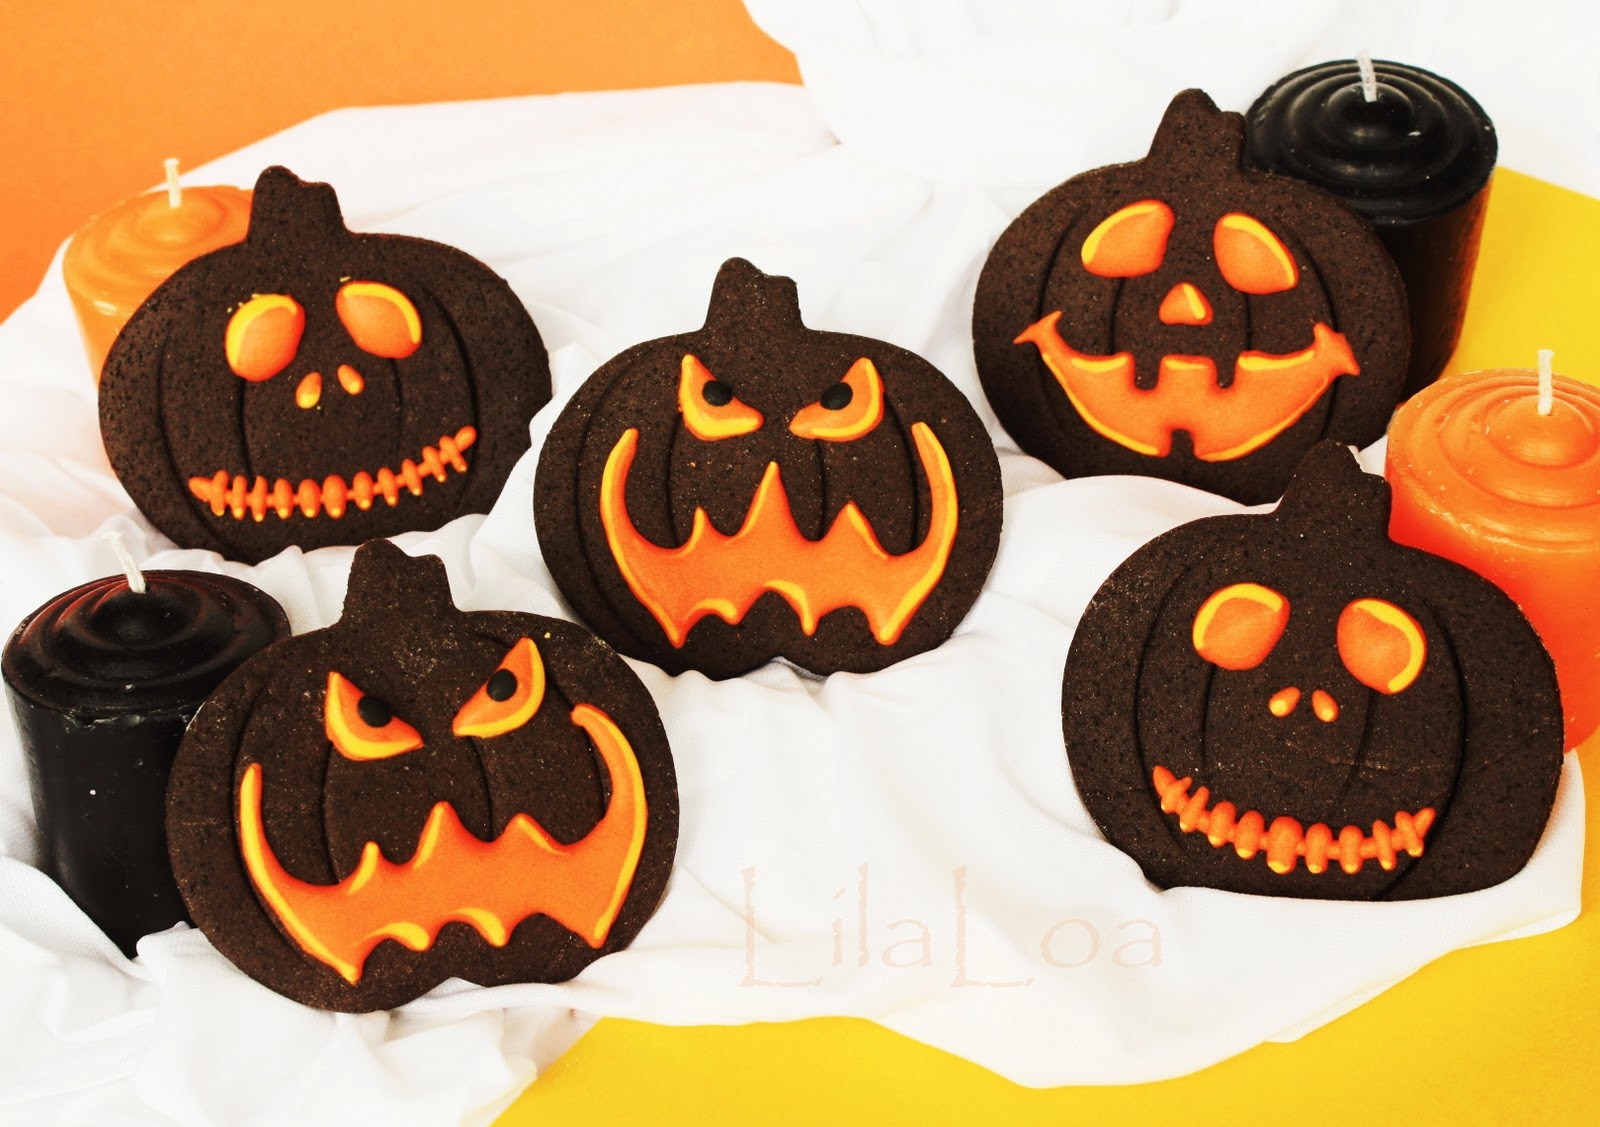 Pictures Of Halloween Cookies  How to Make Those Jack O Lantern Cookies